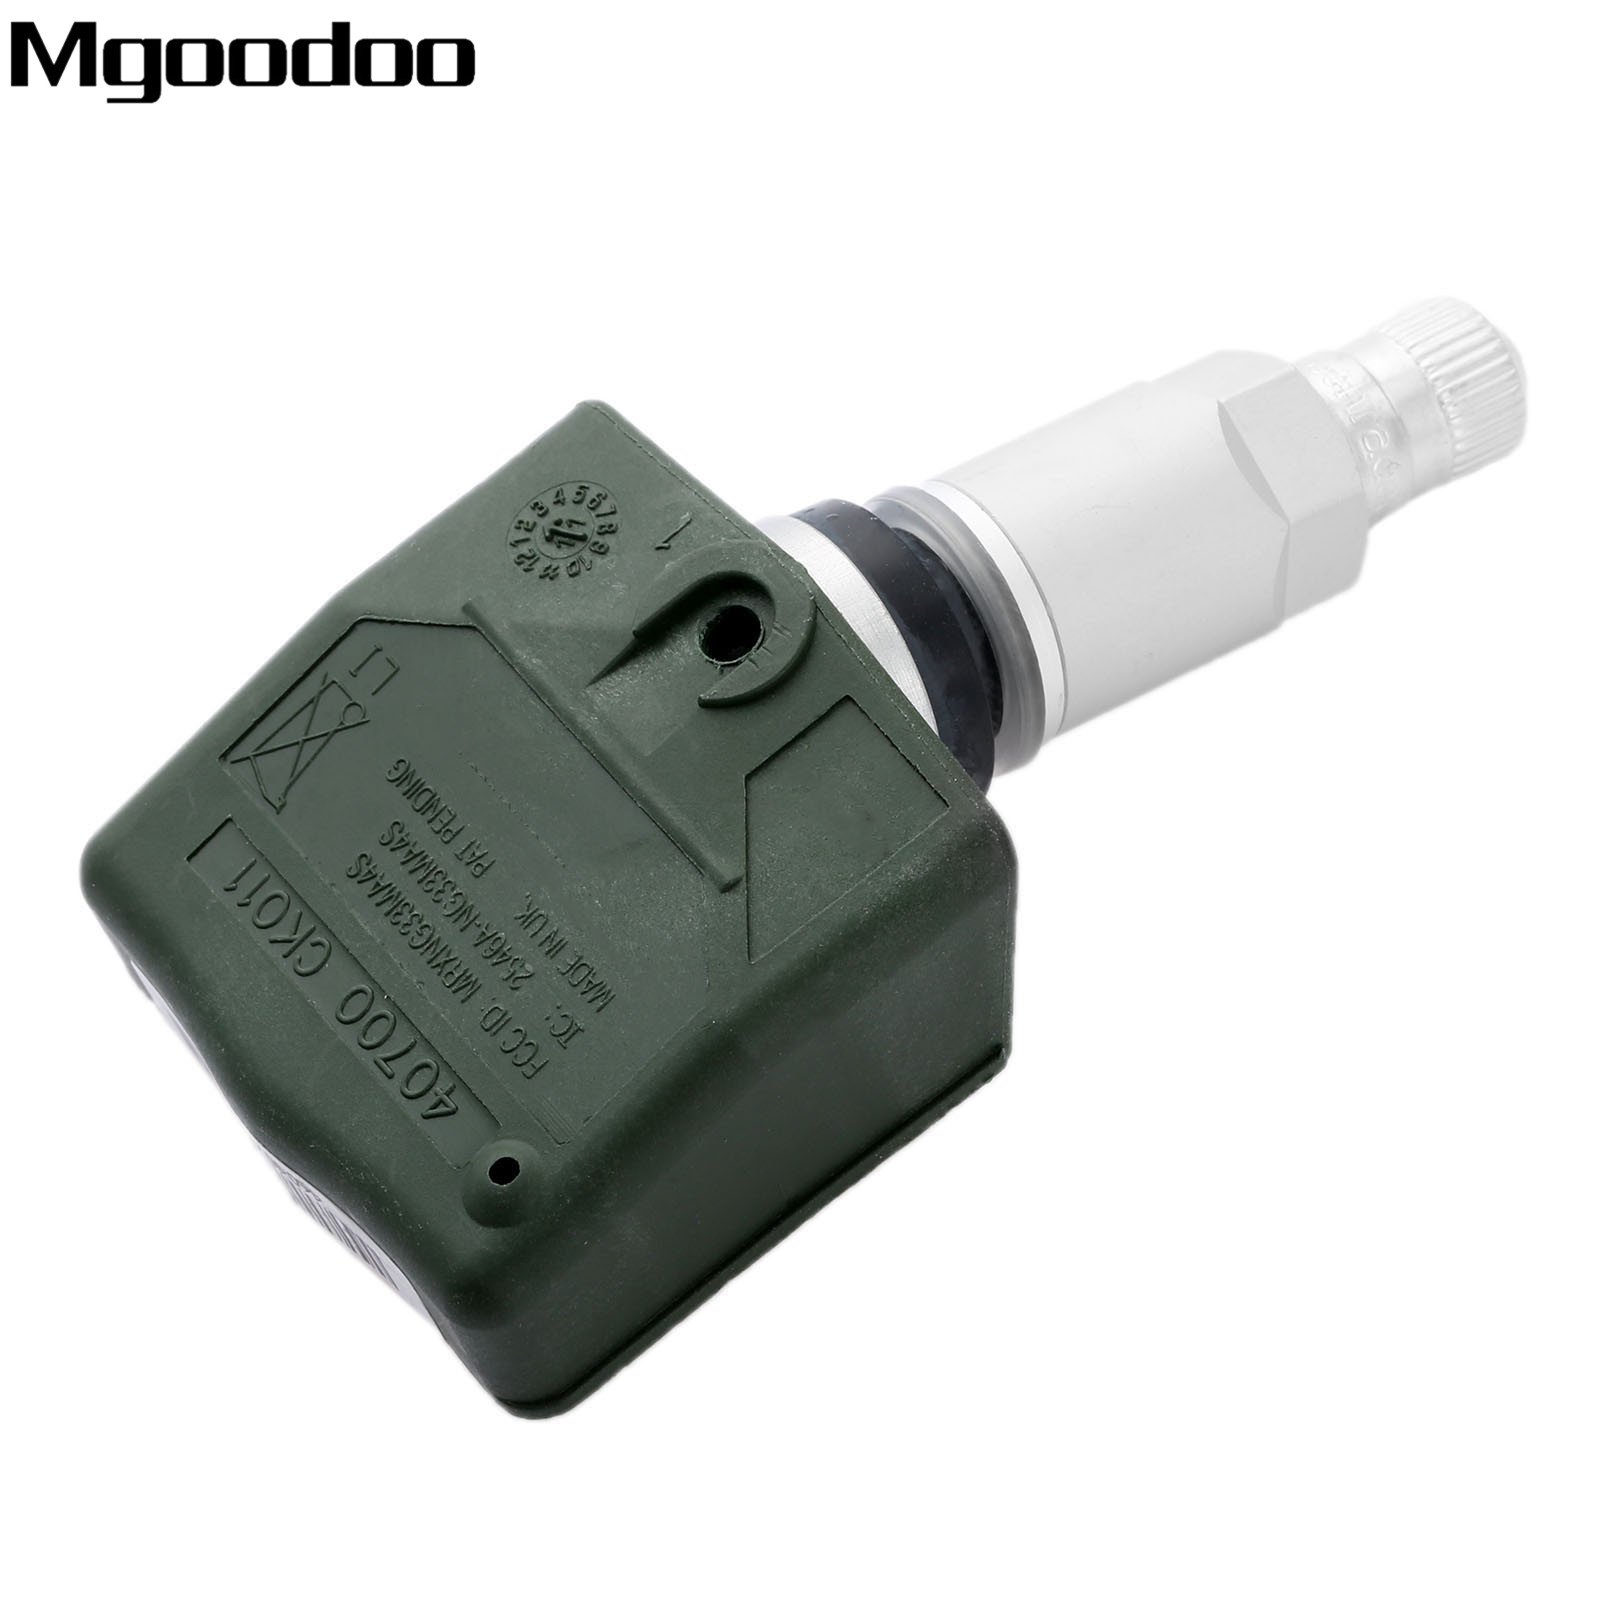 US $17 89 30% OFF|Mgoodoo 1Pc TPMS Tire Pressure Monitor Sensor 40700 CK011  Fittment For Infiniti Nissan 40700CK011 MRXNG33MA4S 315MHz-in Tire